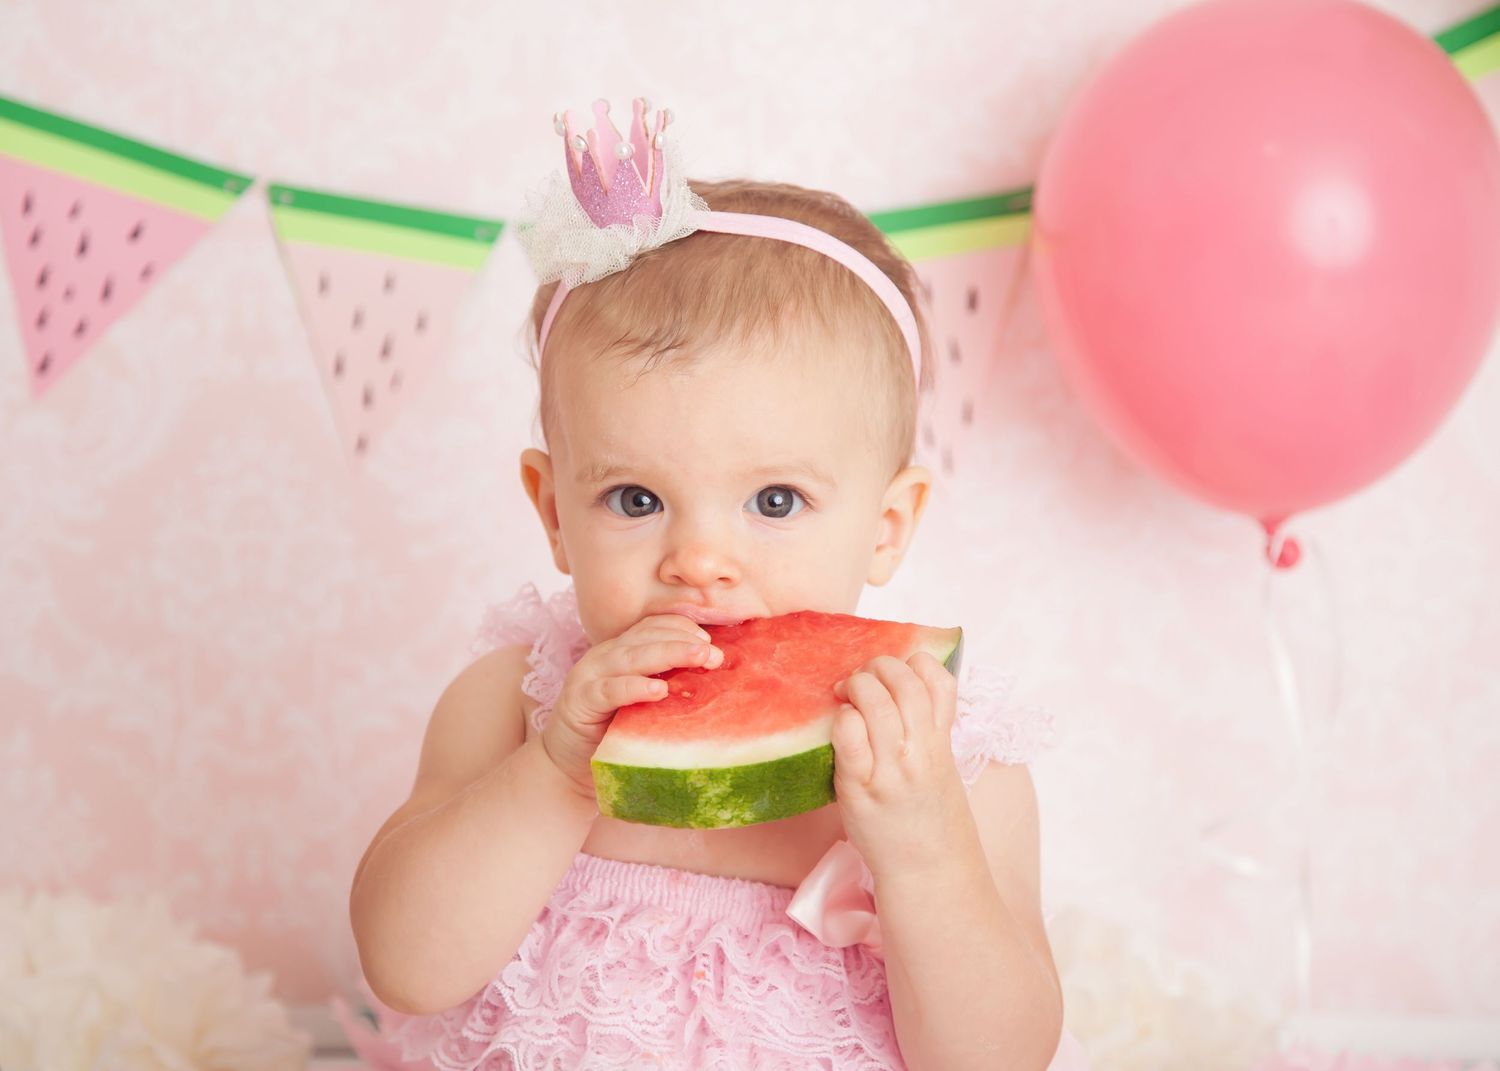 baby eating watermelon during cake smash photos